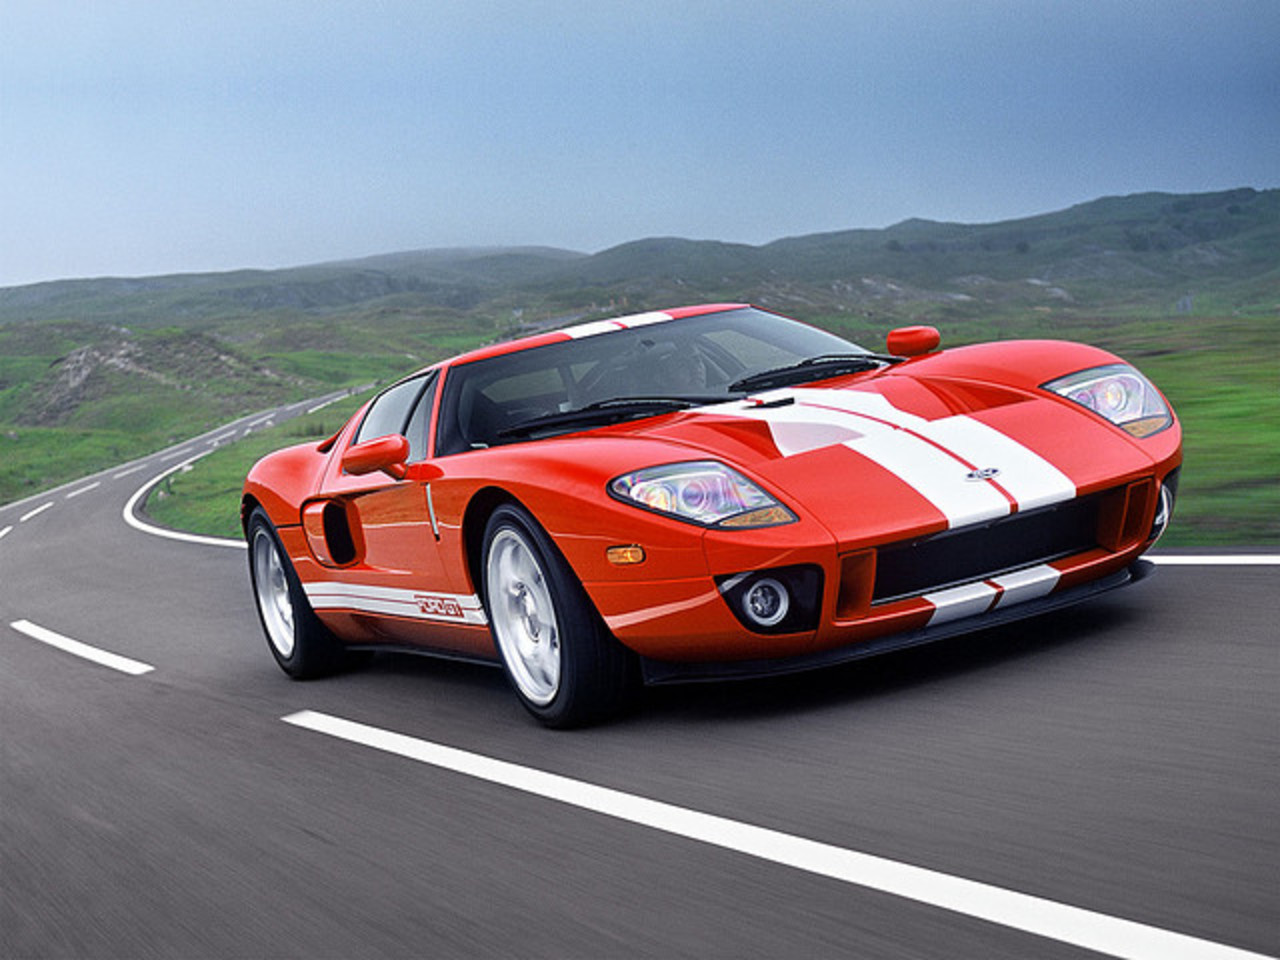 2005 Ford GT | Flickr - Photo Sharing!